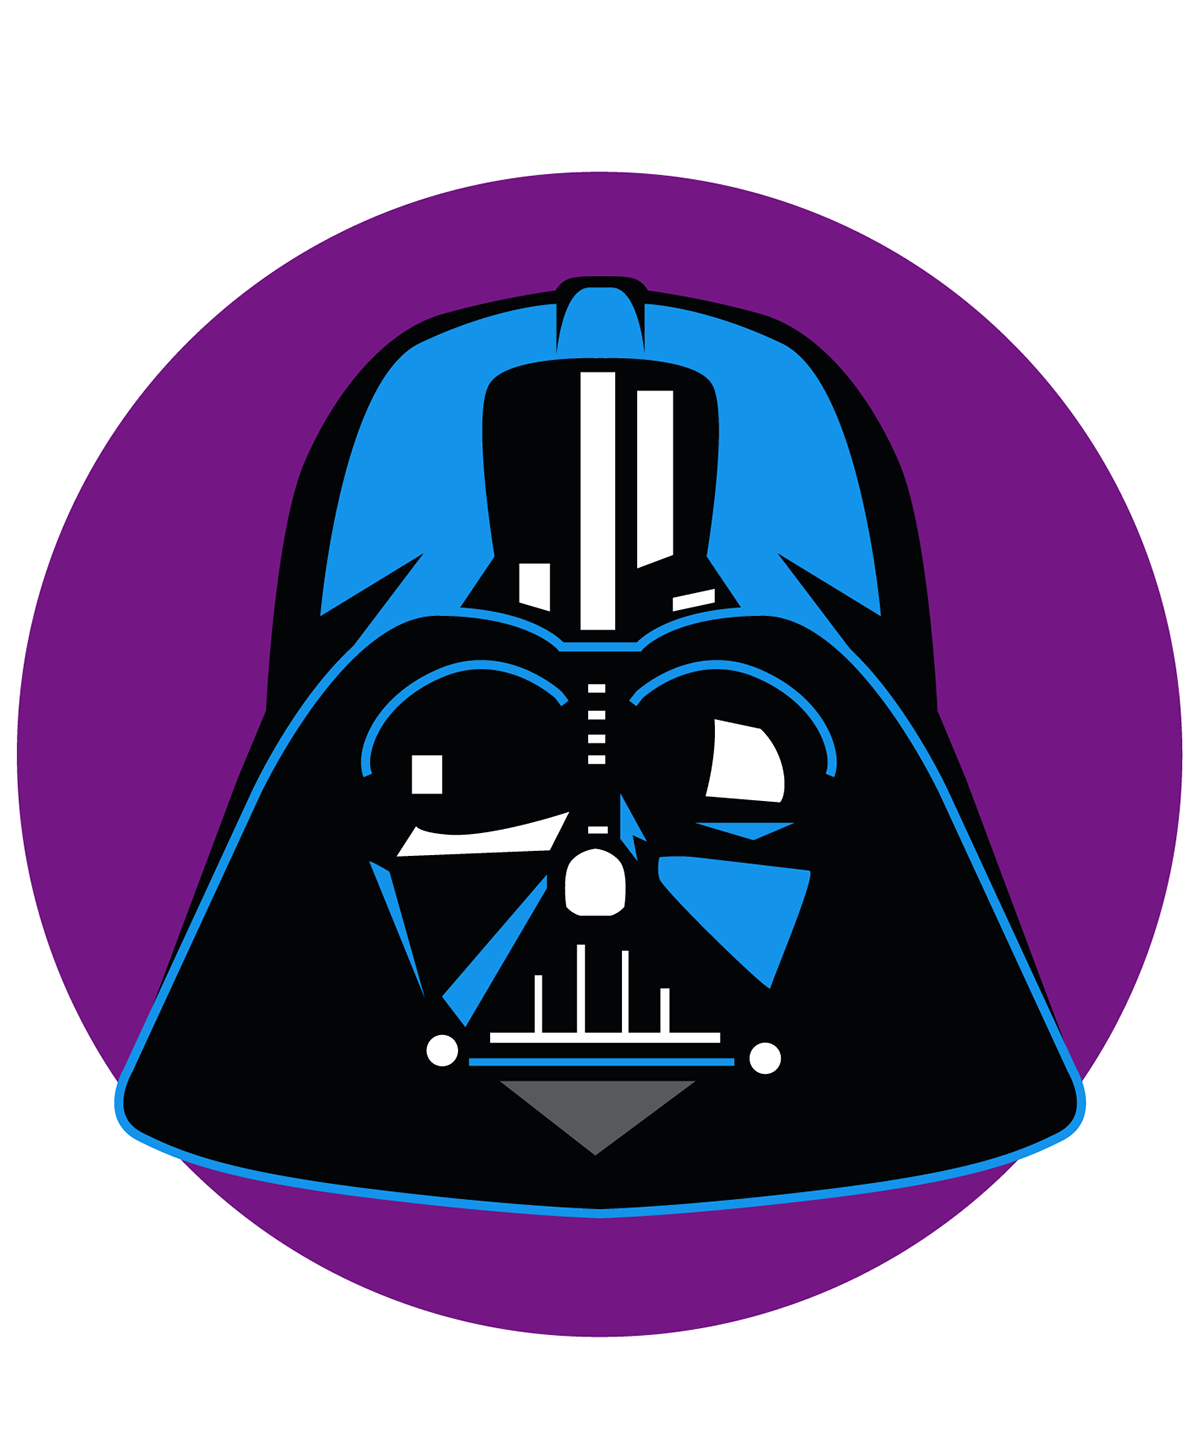 Star wars clipart for coloring clip freeuse Star Wars Darth Vader Clipart at GetDrawings.com | Free for personal ... clip freeuse